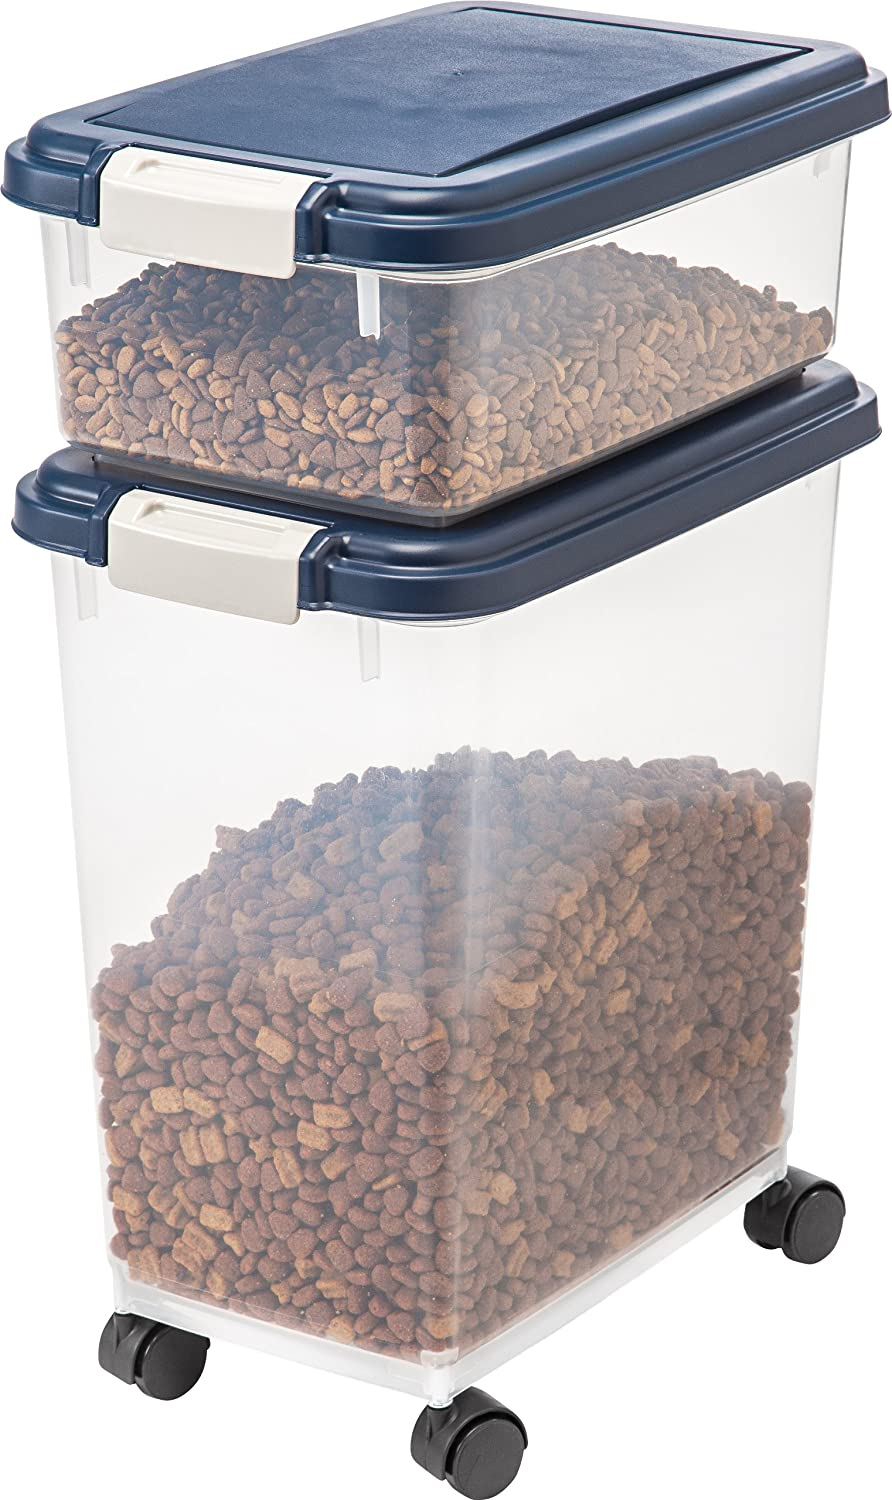 IRIS USA, Inc. 3- Piece Airtight Pet Food Storage Container